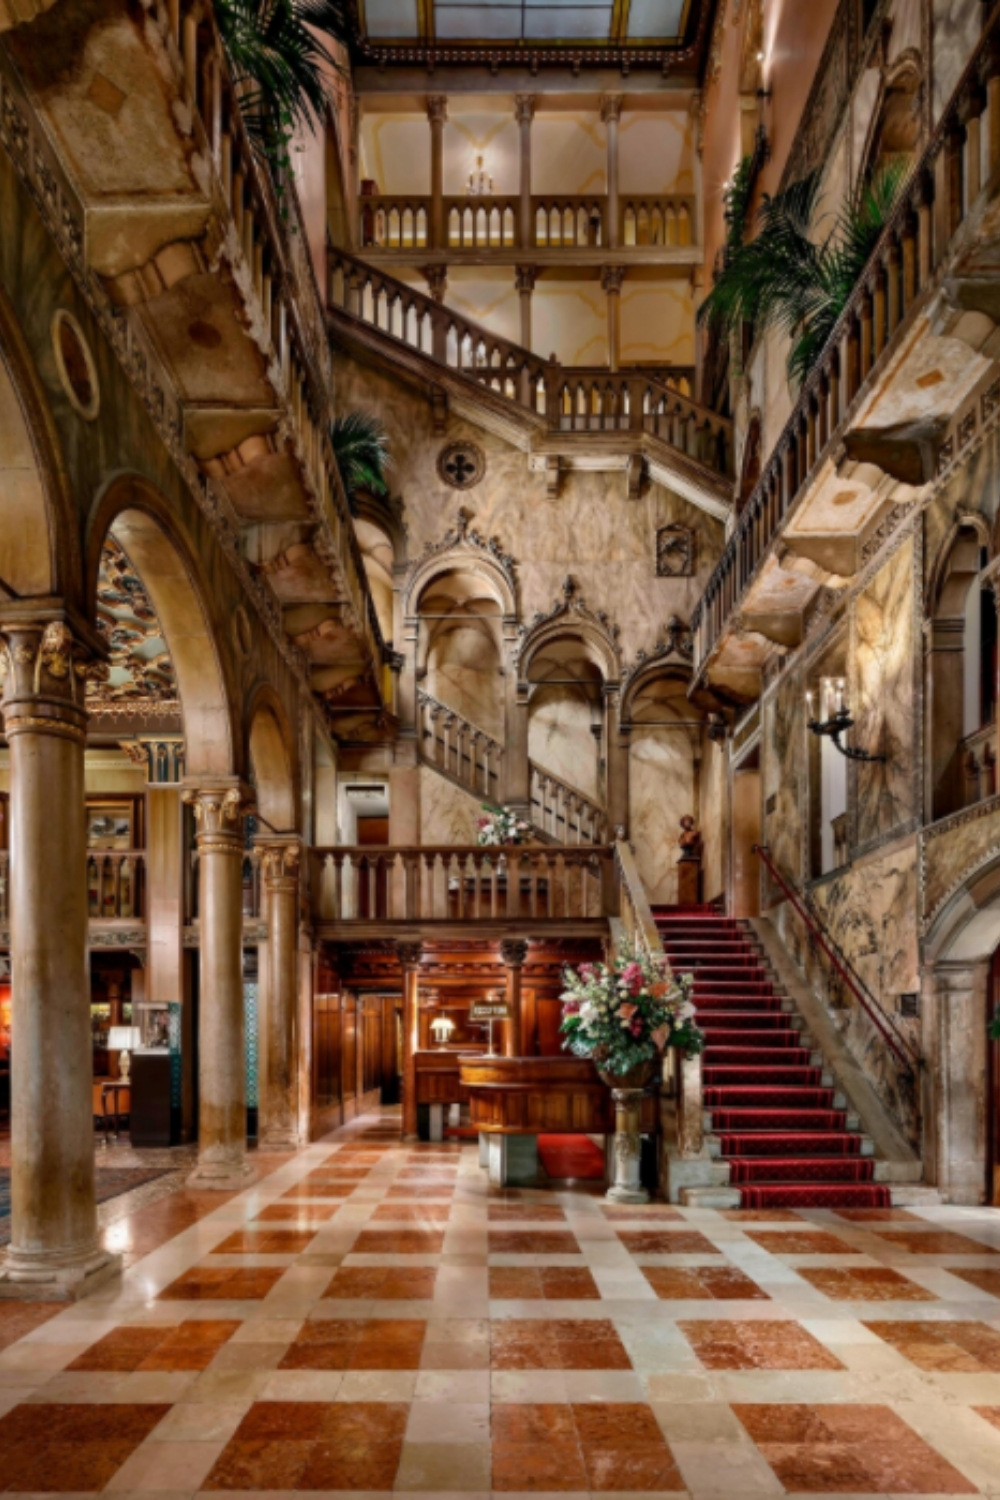 Hotel Danieli's luxurious and richly decorated lobby area makes quite a statement for a destination wedding venue